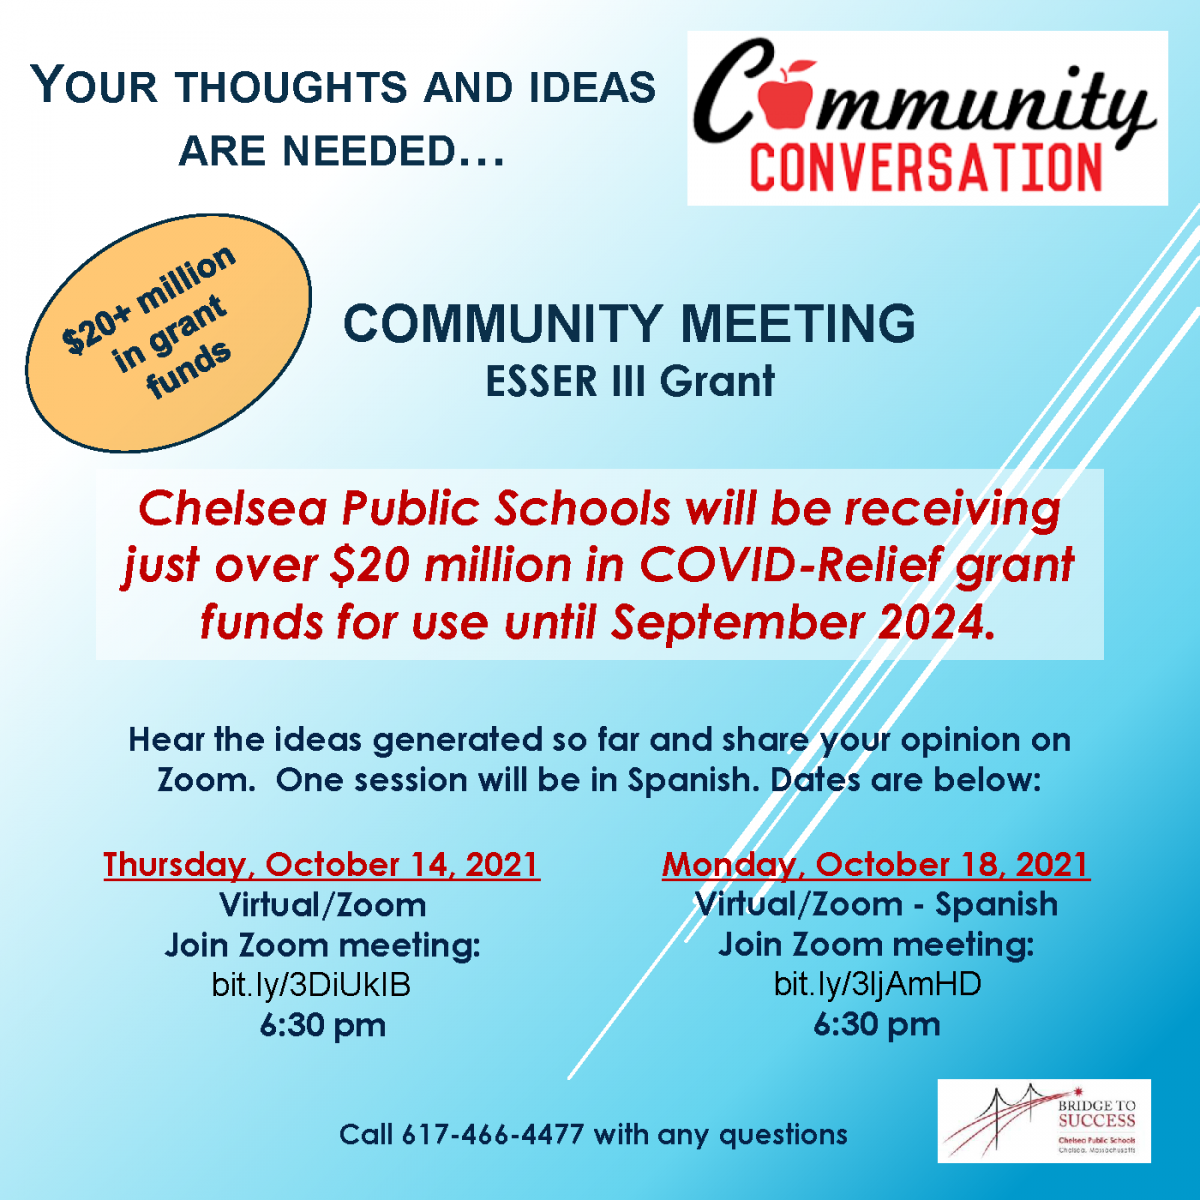 Flyer from Chelsea Public Schools describing the ESSER III community meeting to discuss the funding that CPS has.